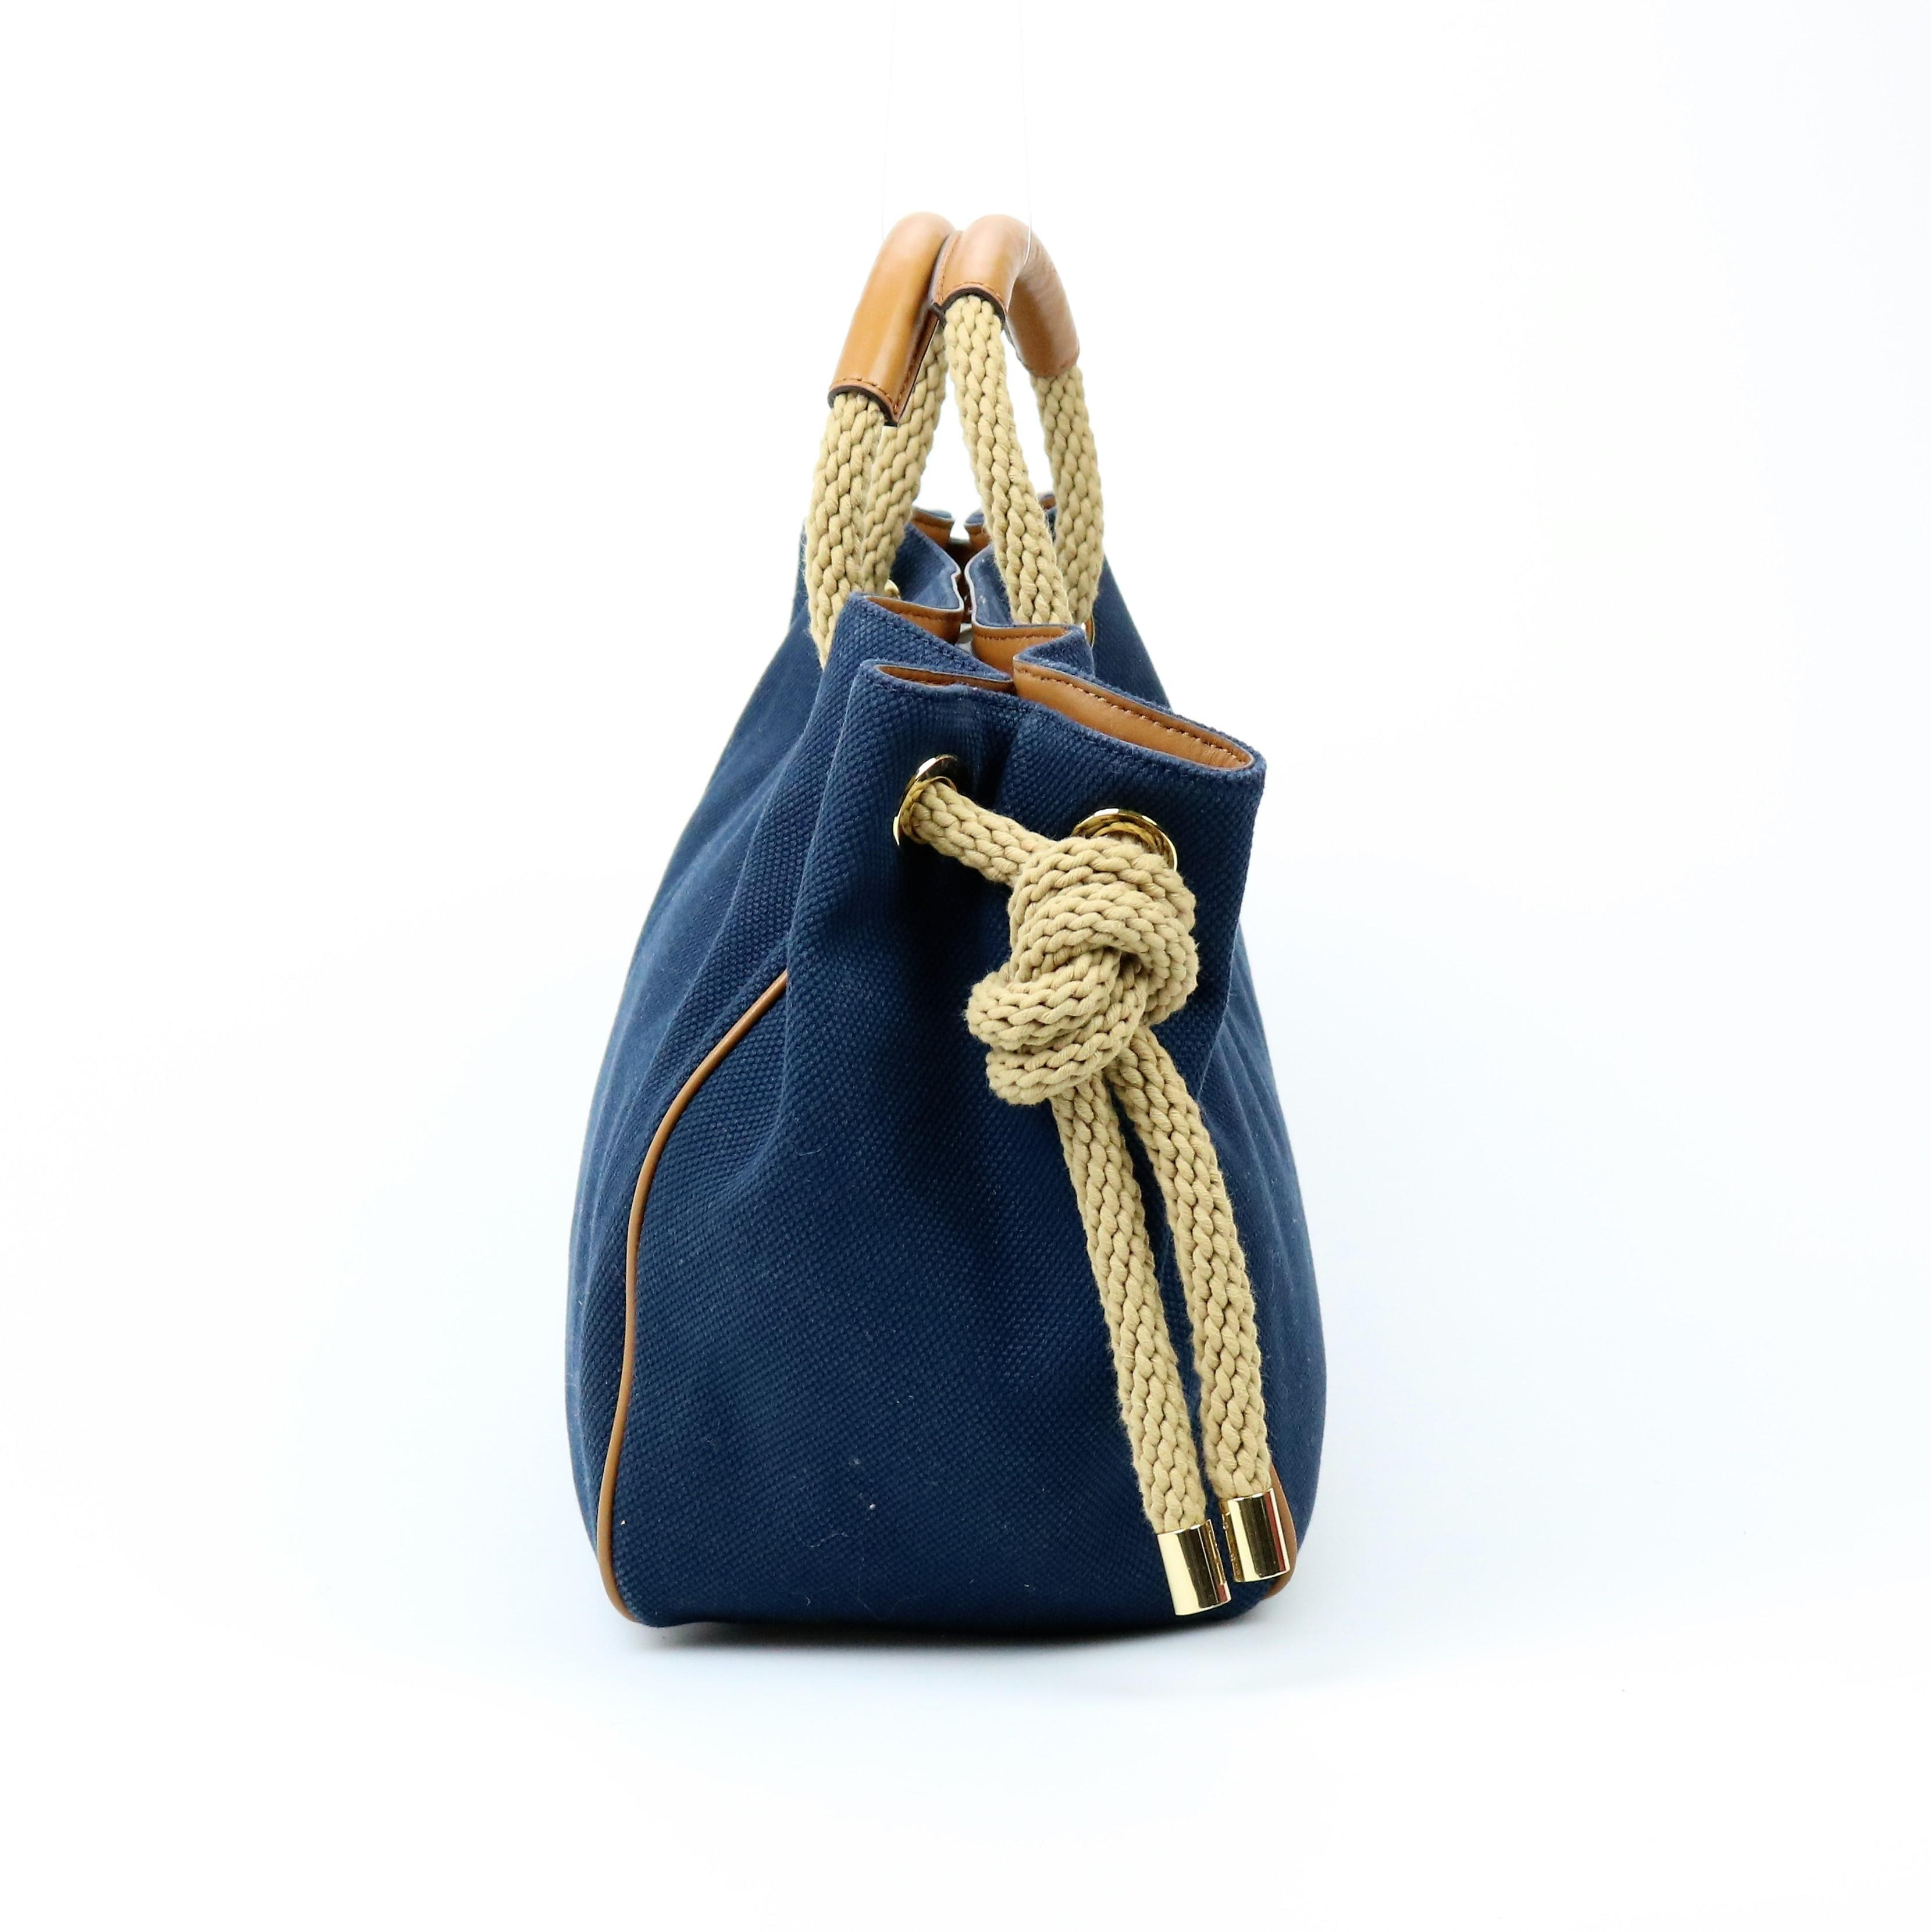 2dc7bfbba864 ... wholesale michael kors gold hardware snap closure rope drawstring knot  side detail large shoulder bag.